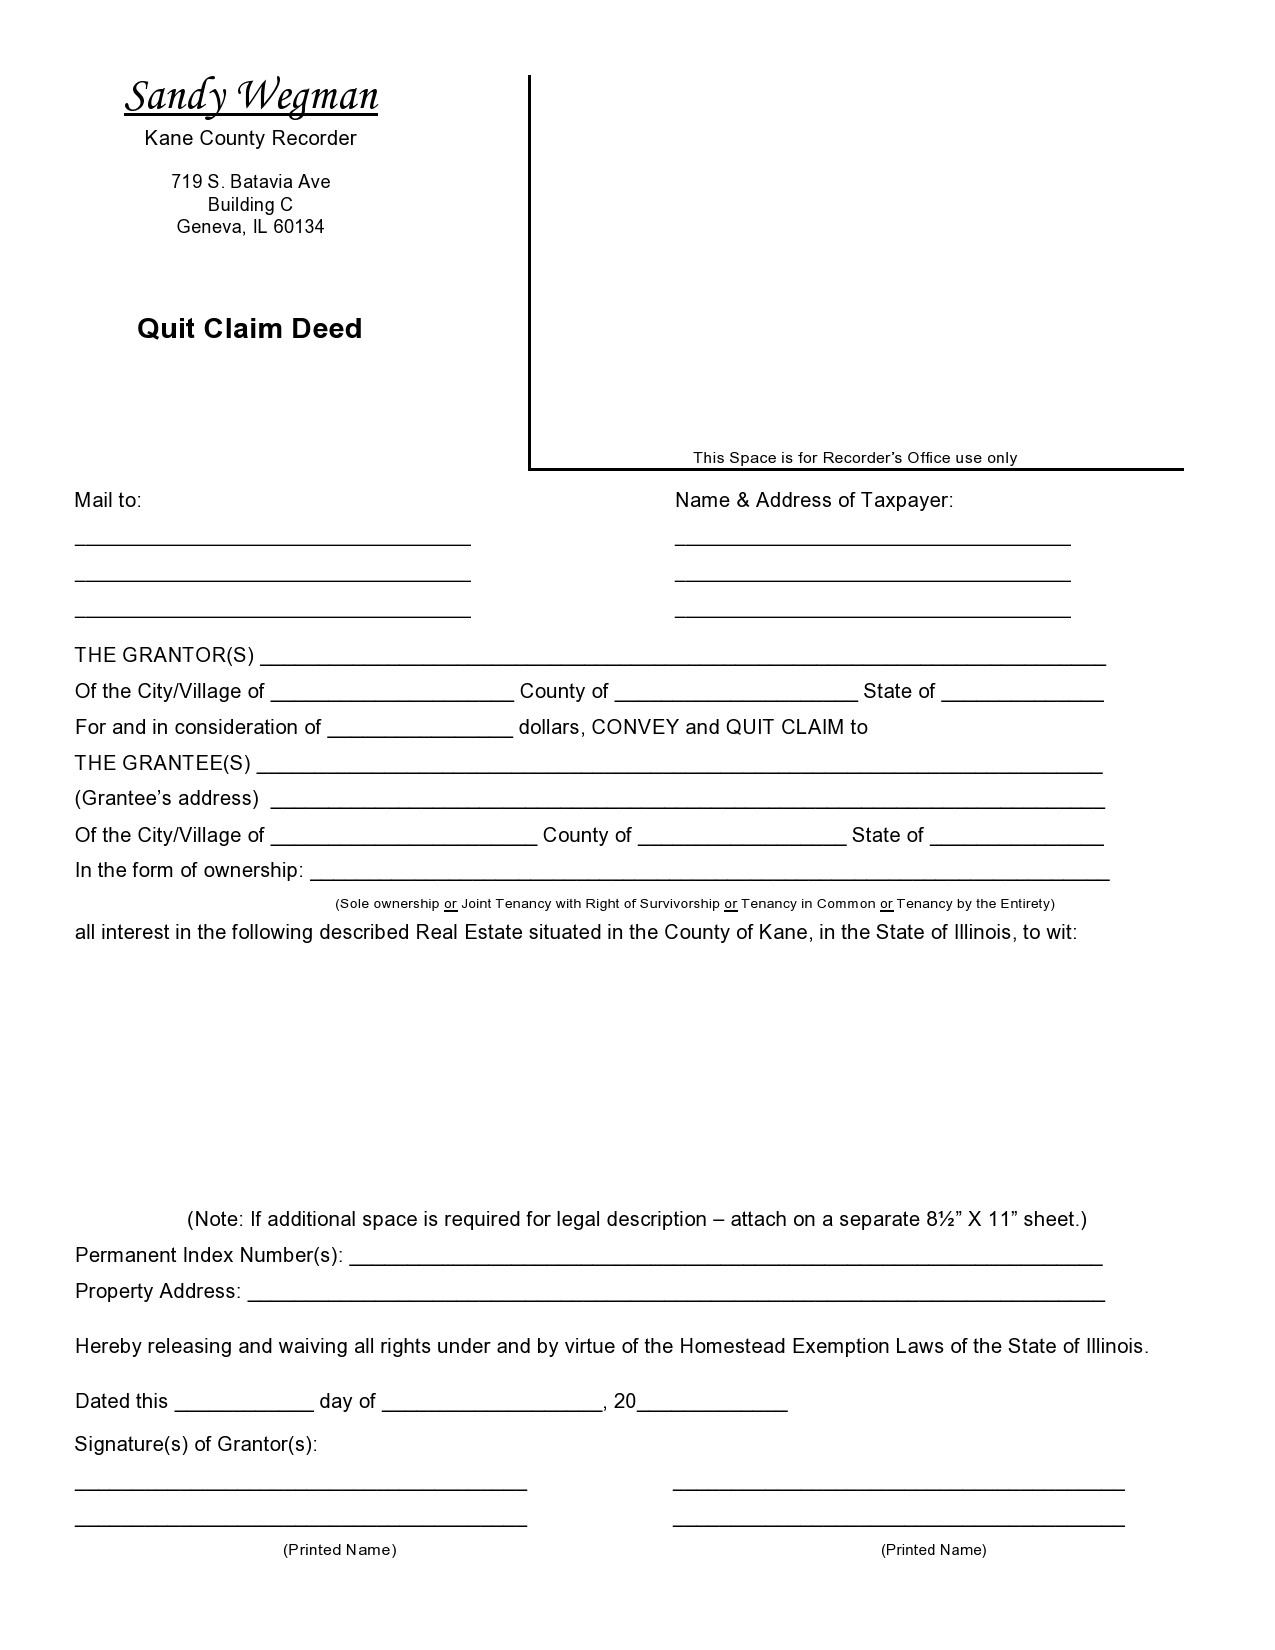 Free quit claim deed form 20